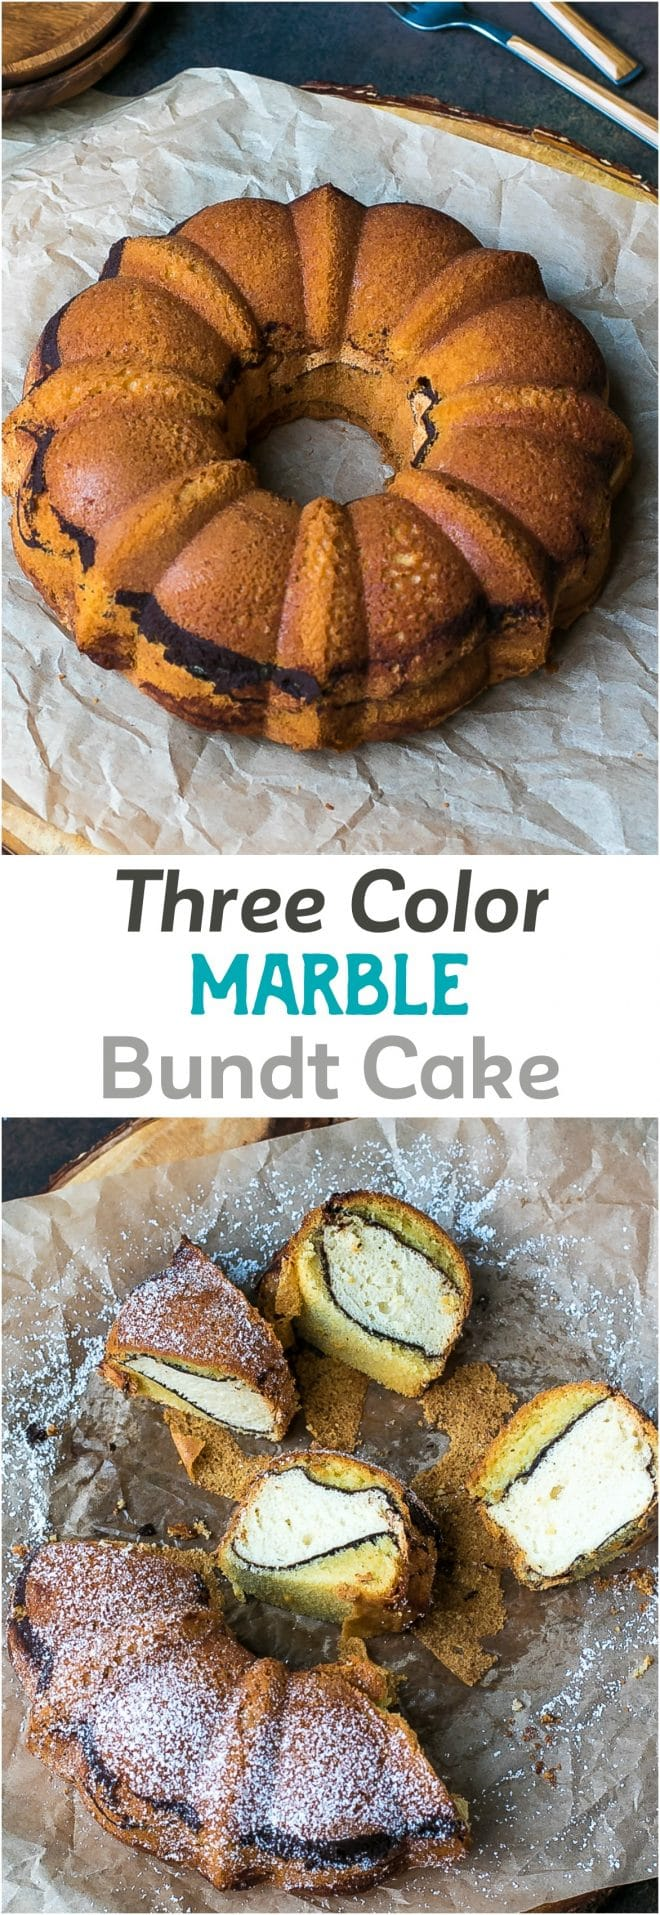 Three Color Marble Bundt Cake